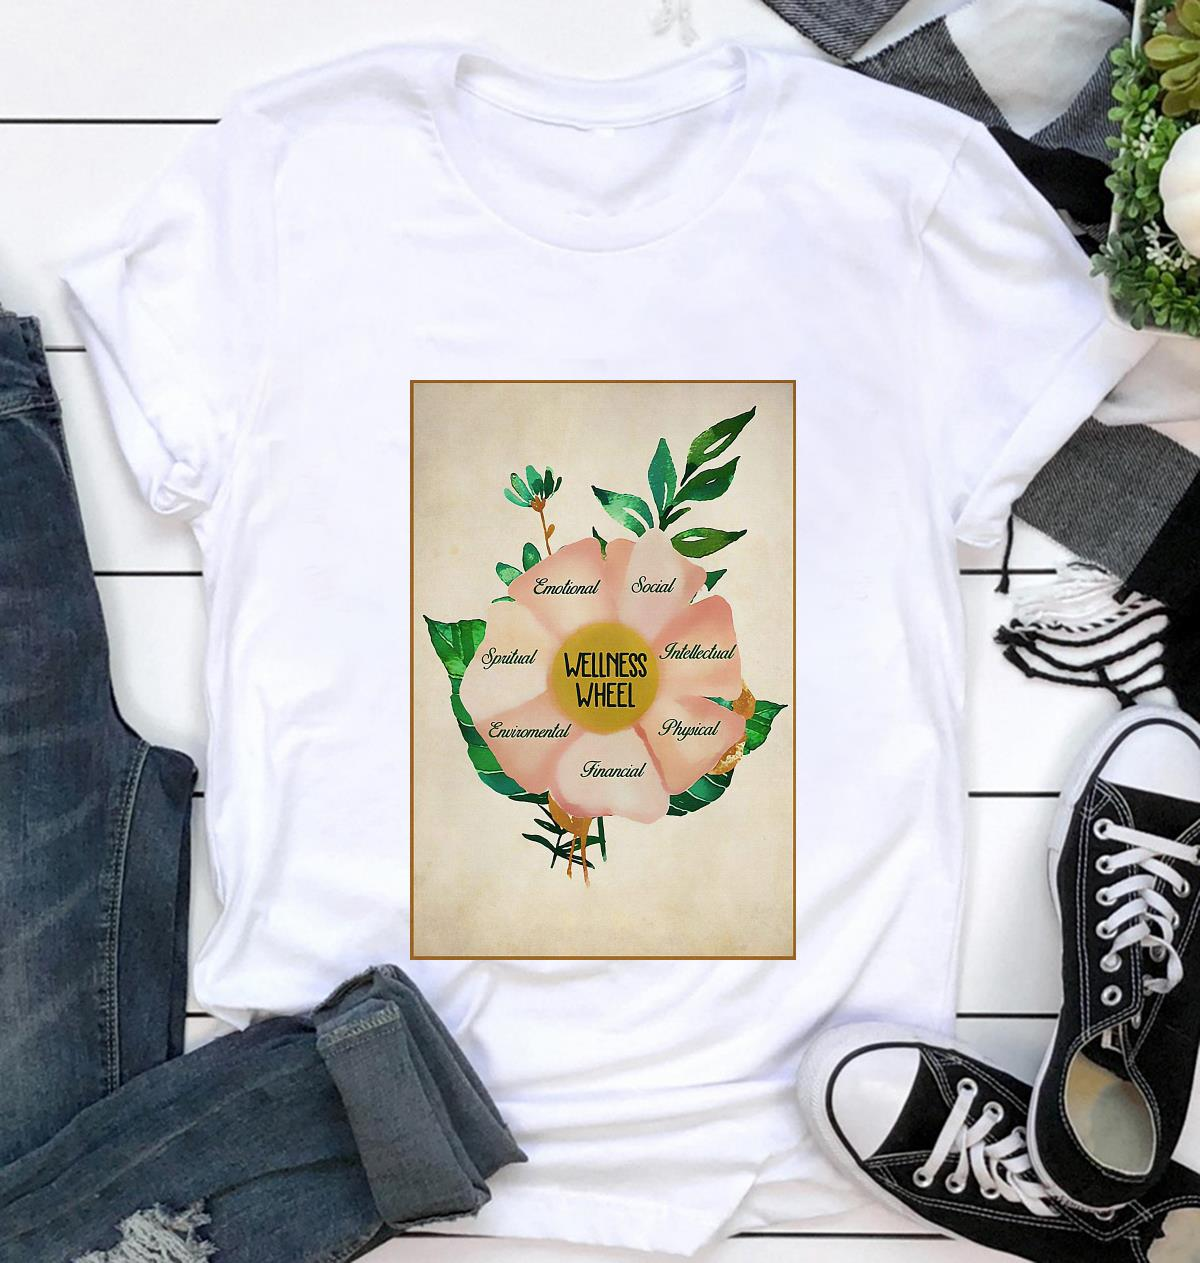 Social worker wellness wheel poster t-shirt